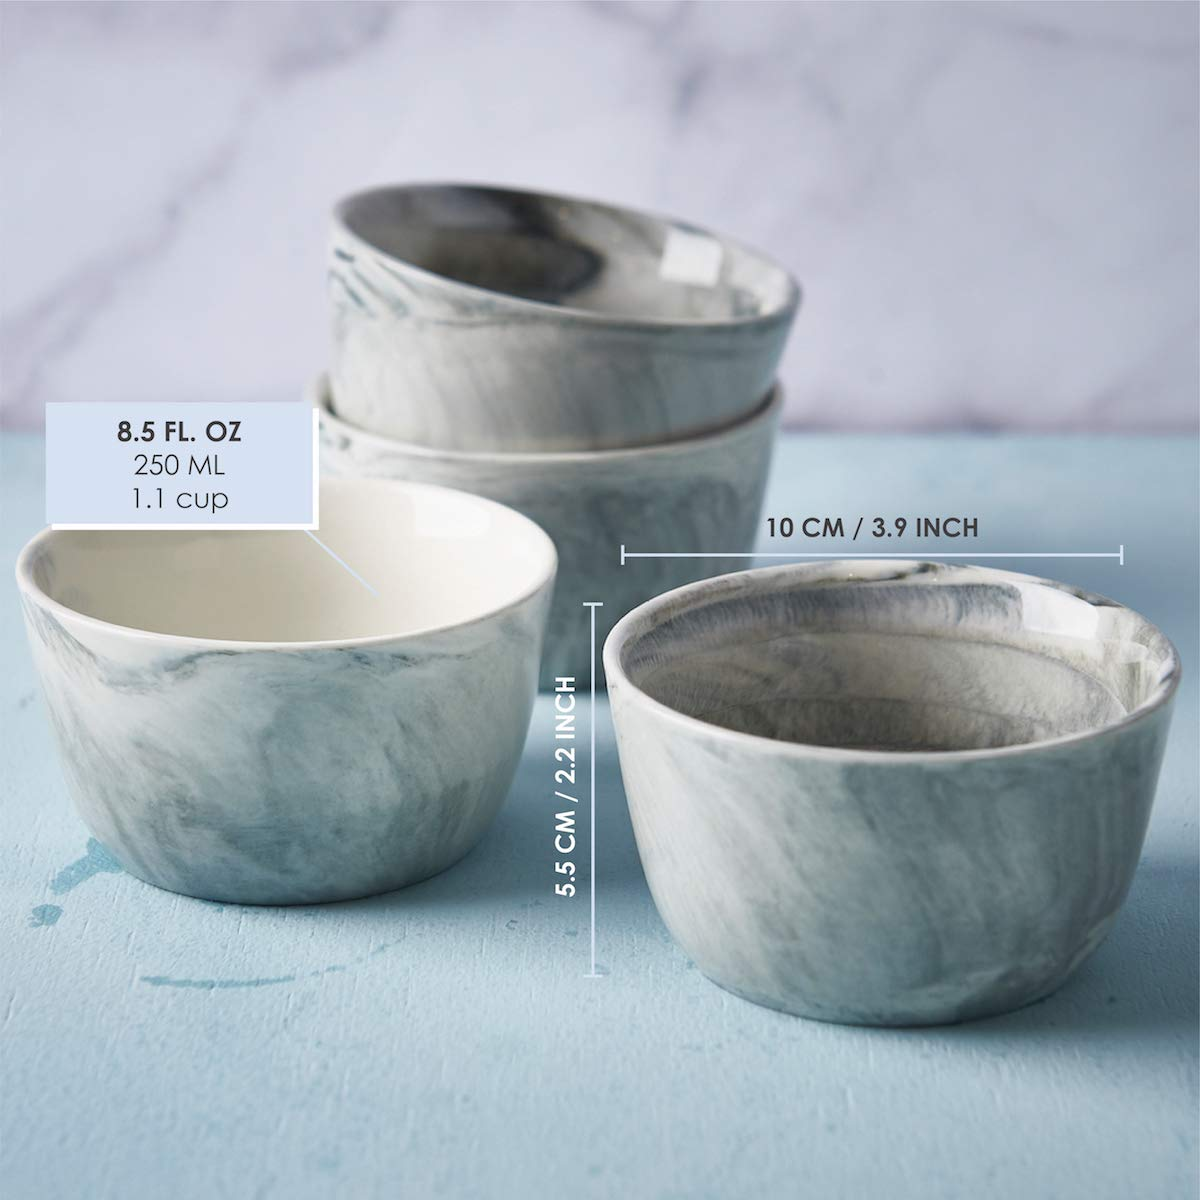 Set of 4 8.5oz Marbled Bowls for Baking Snacks Dips and Condiments Ceramic Ramekins by CIROA